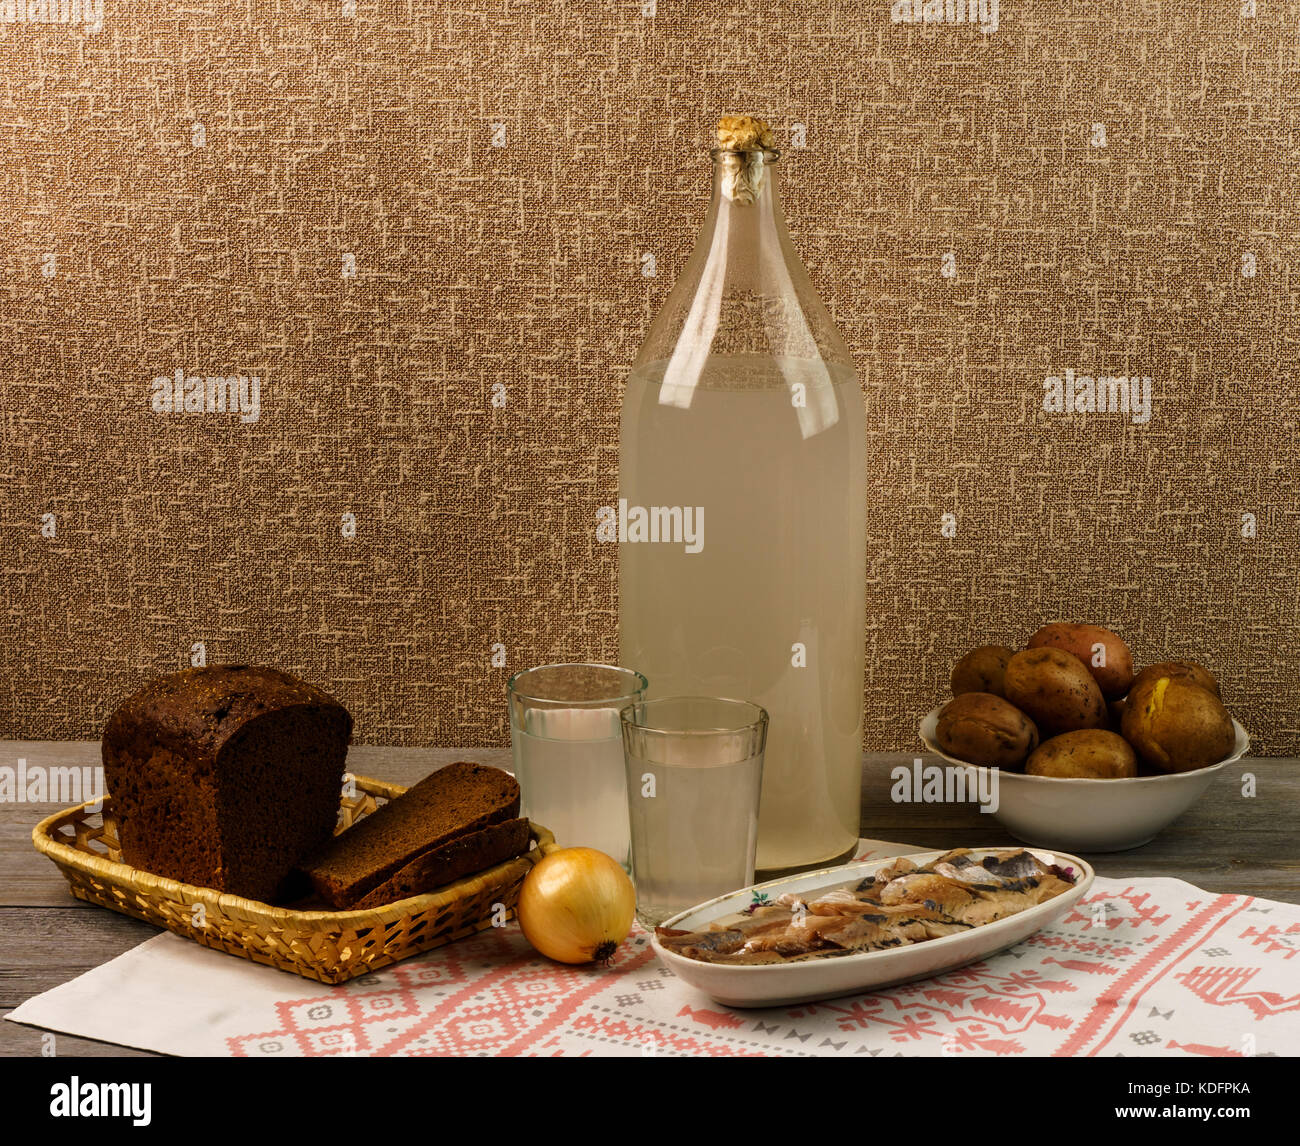 Ukrainian national drink and snack. The bottle and glass of moonshine on the old wooden table - Stock Image